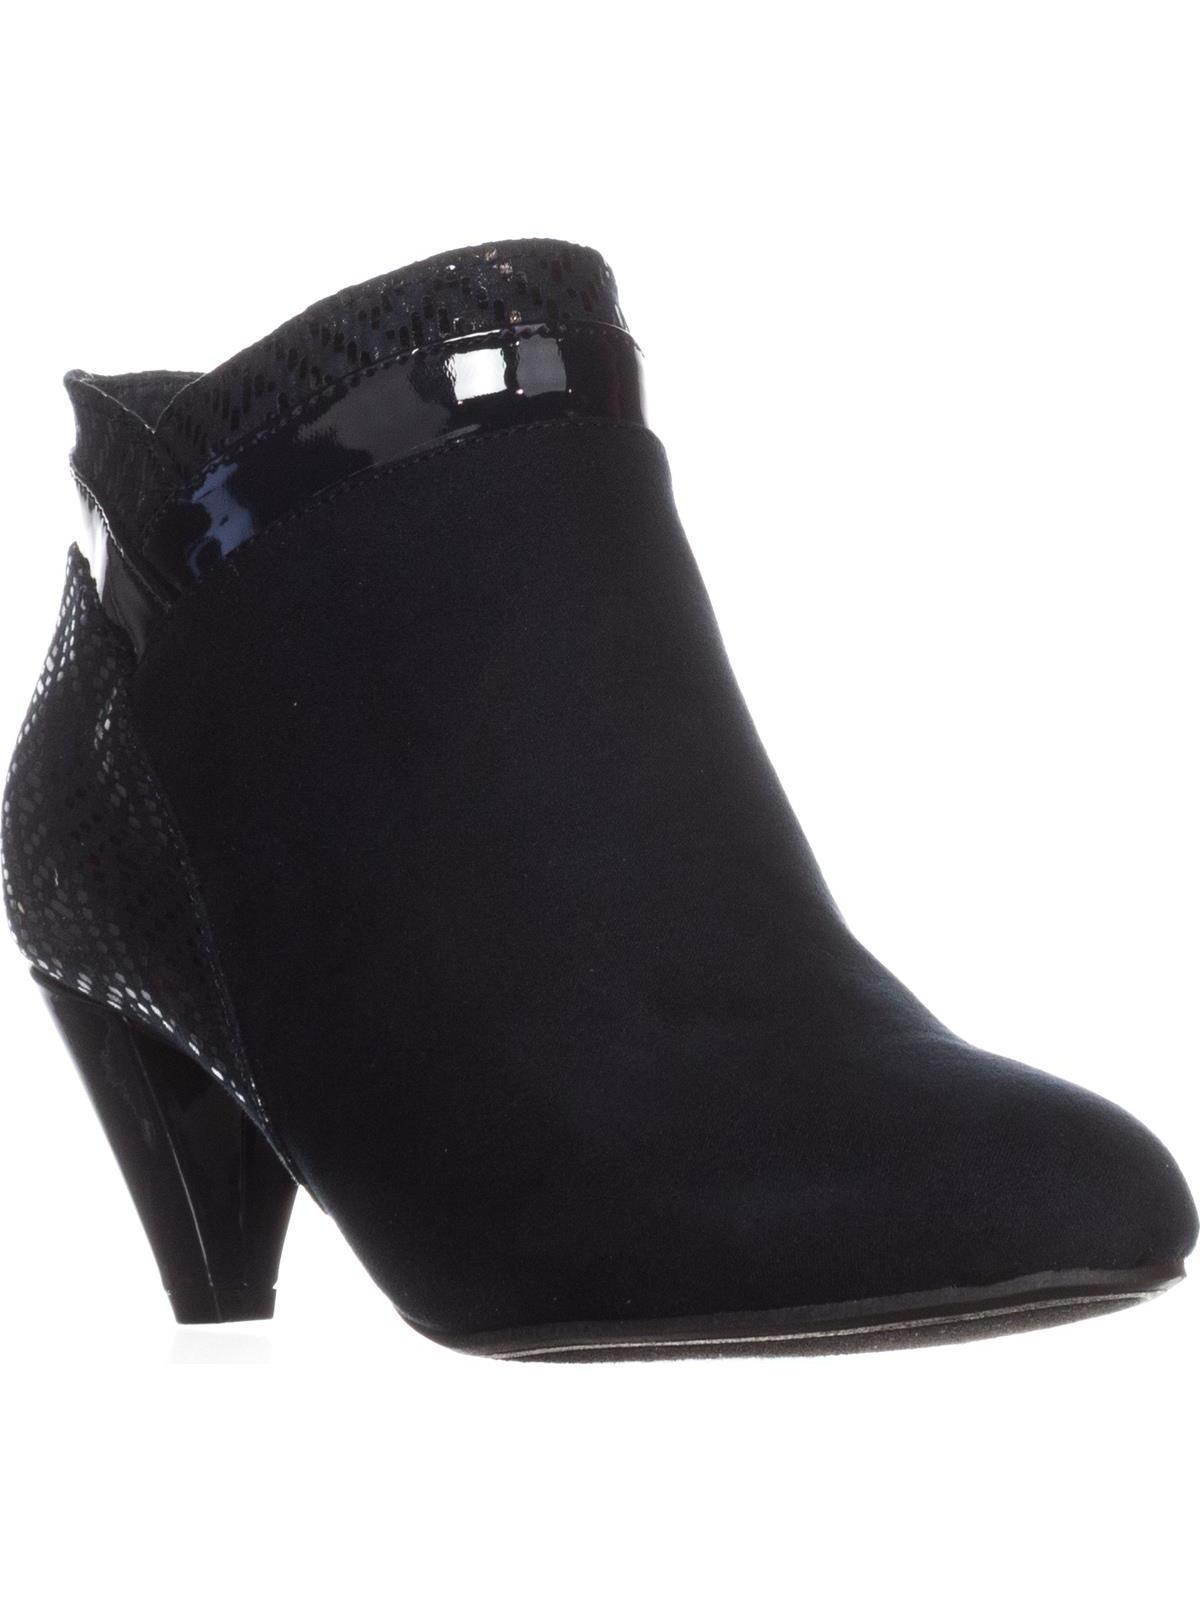 Womens KS35 Cahleb Dress Almond-Toe Ankle Booties, Navy